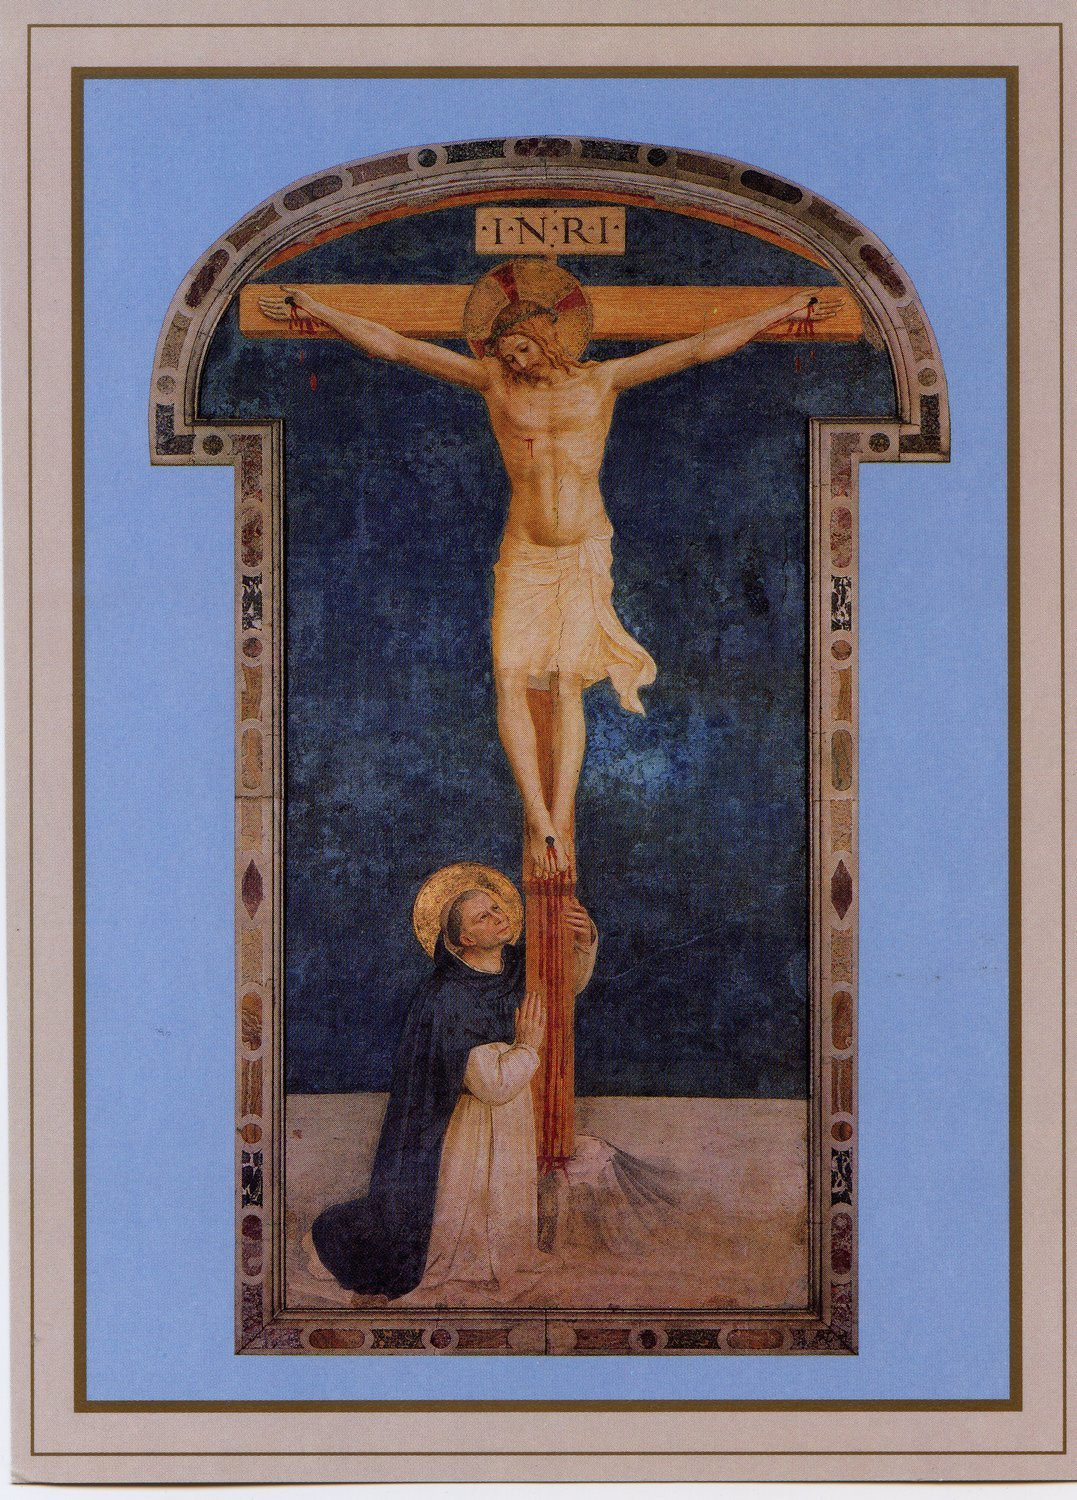 St. Dominic Adoring the Crucifixion Holy Card (Twenty-Five Pack)